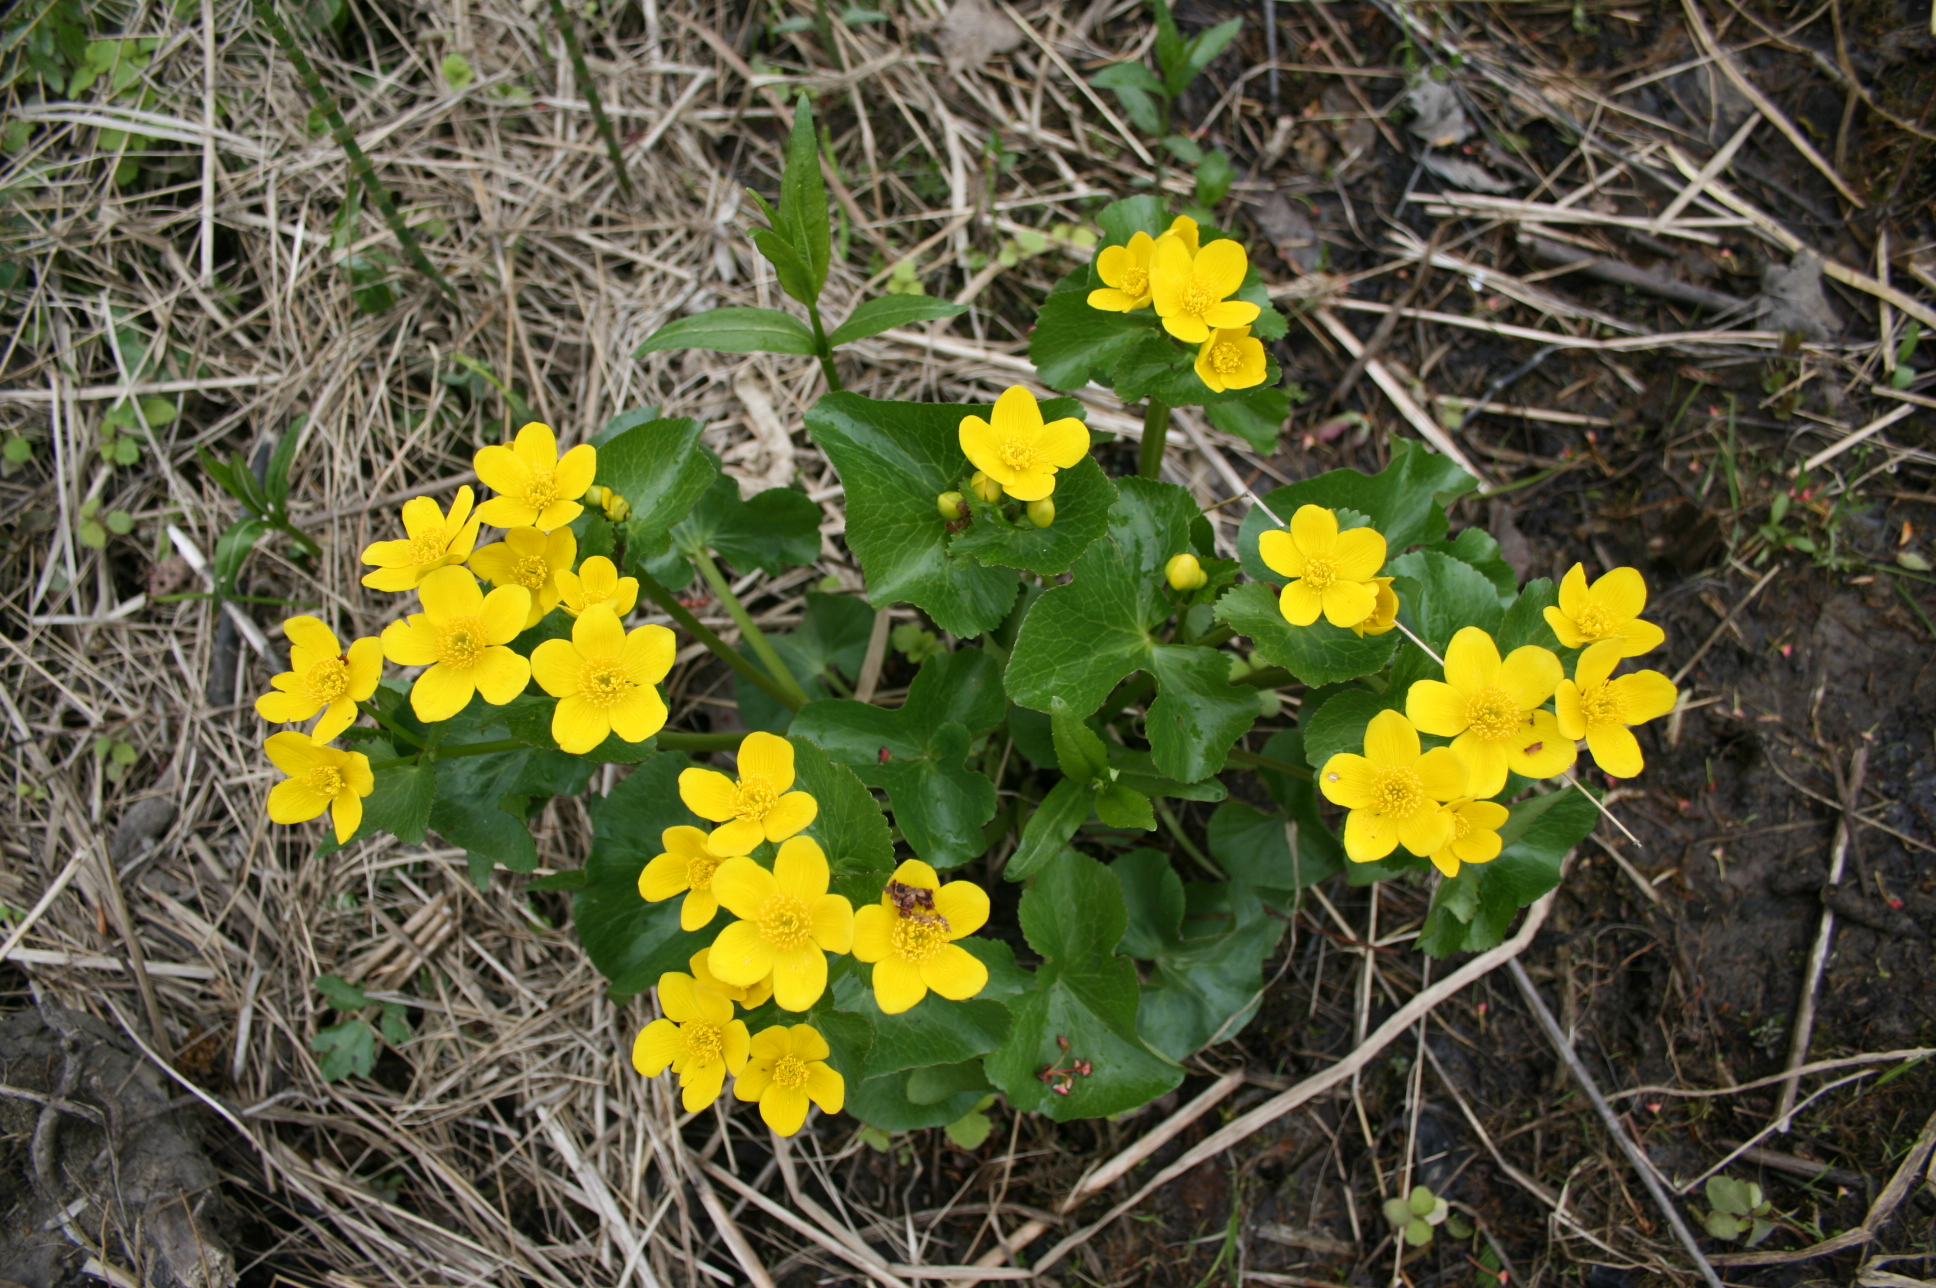 Populage des marais (Caltha palustris). Photo: FQPPN.